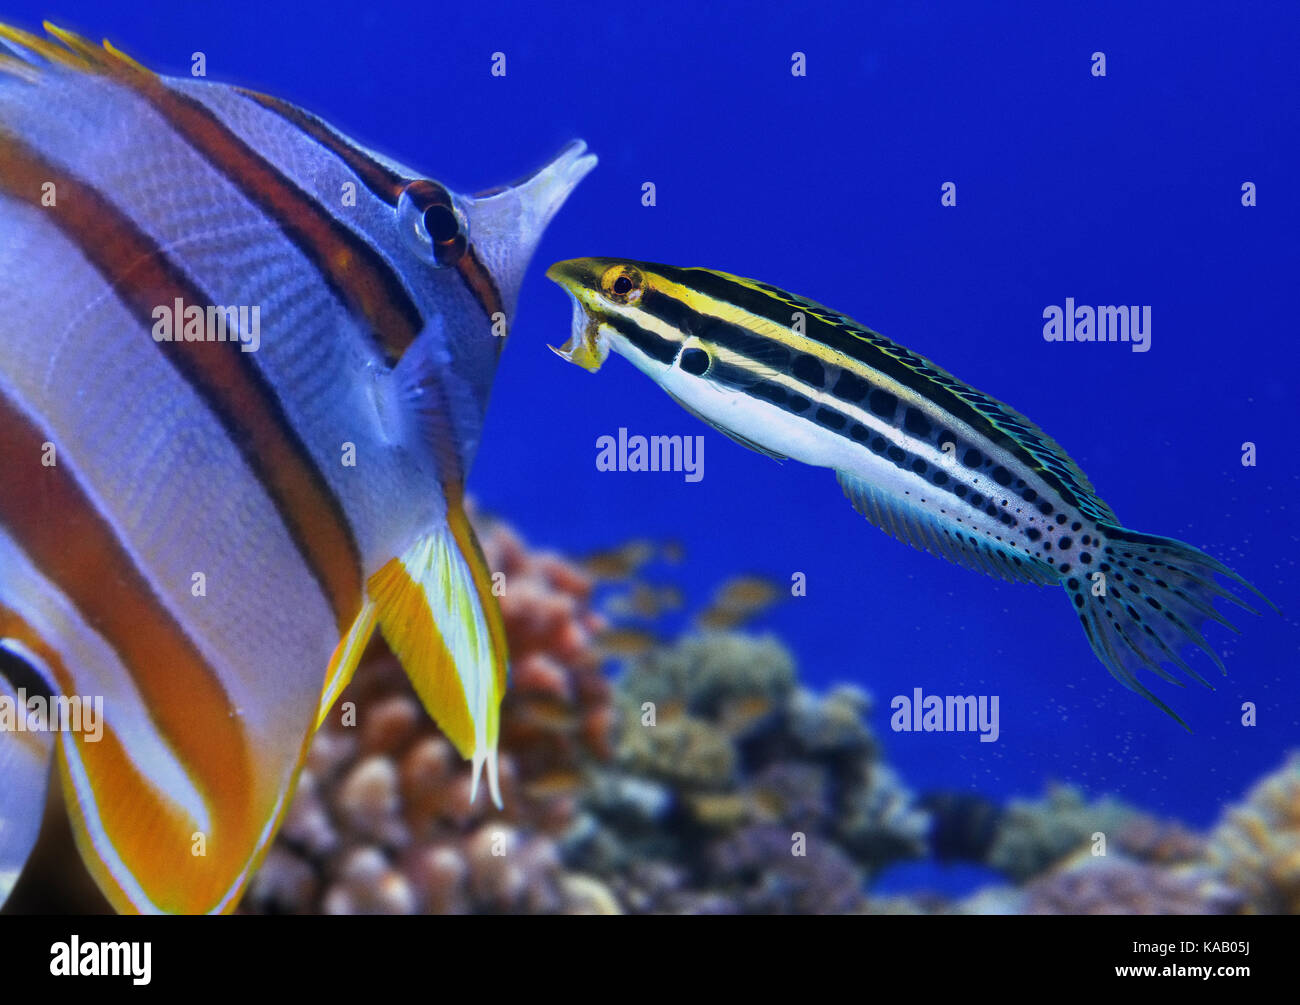 Striped poison-fang blenny, Meiacanthus grammistes. Intimidating a butterfly fish away from its territory. - Stock Image